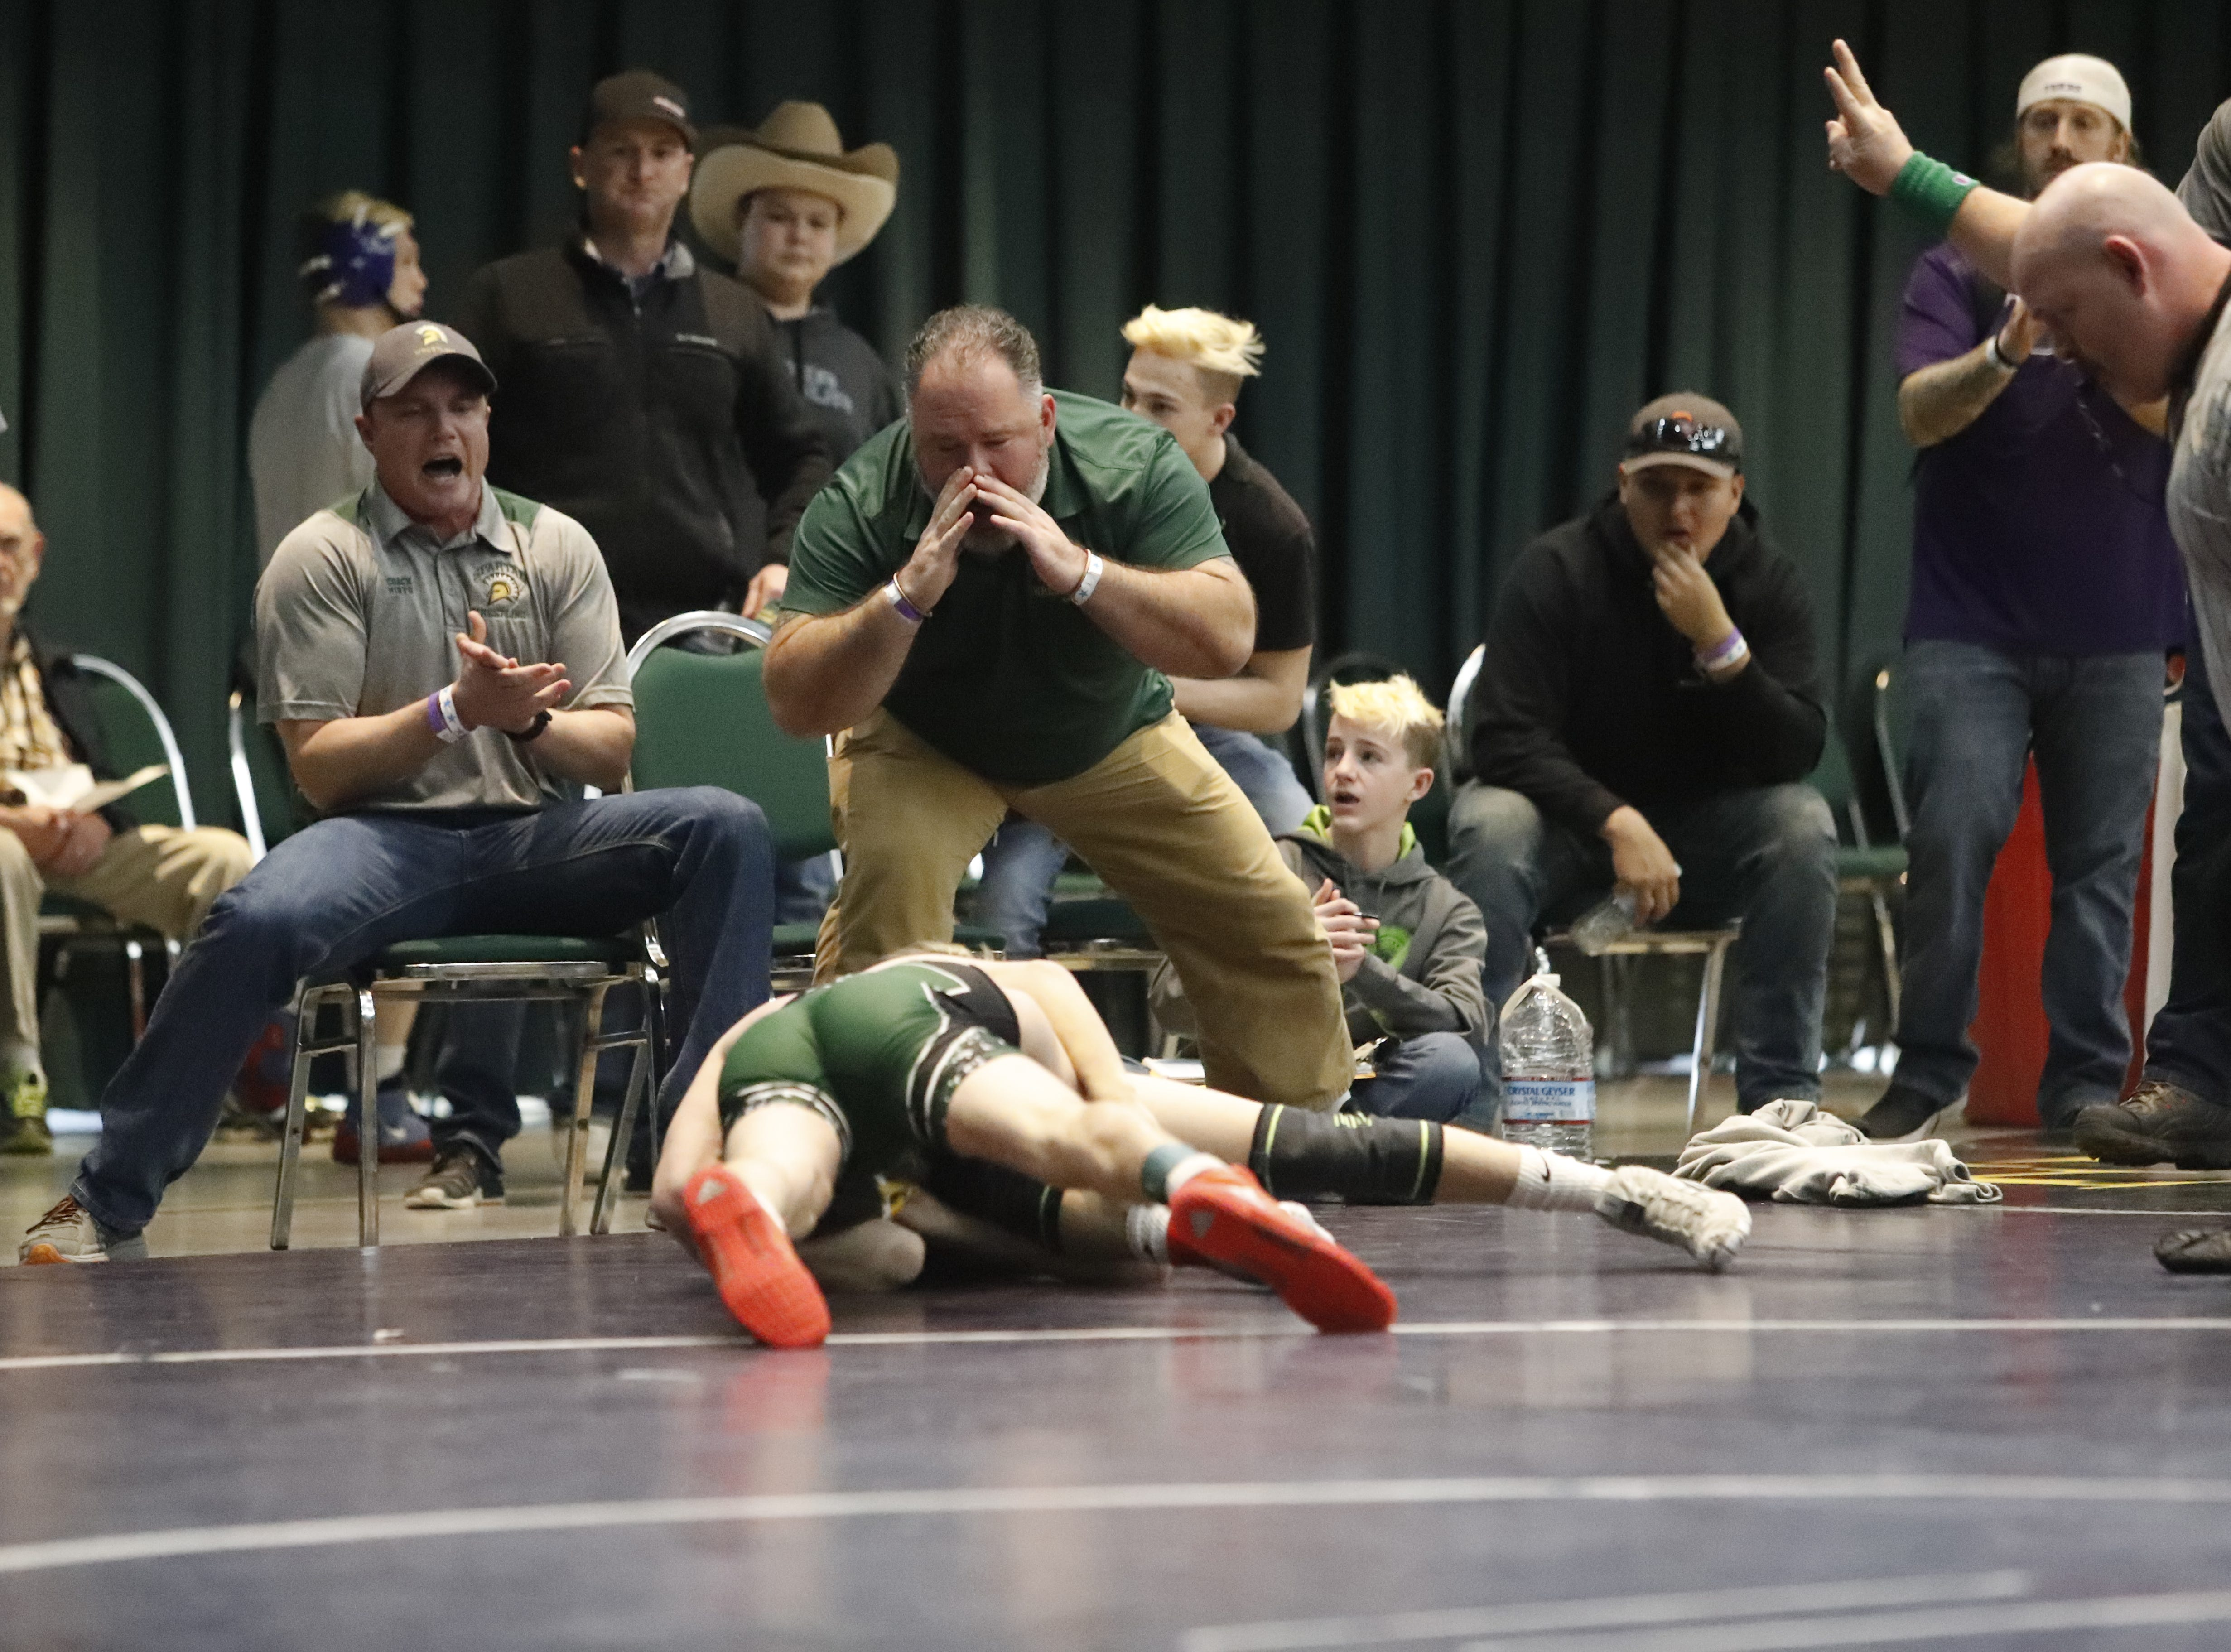 Red Bluff coaches shout directions to 113-pound wrestler AJ Strole at the Northern Section championships on Friday, Feb. 15, at the Redding Civic Auditorium.